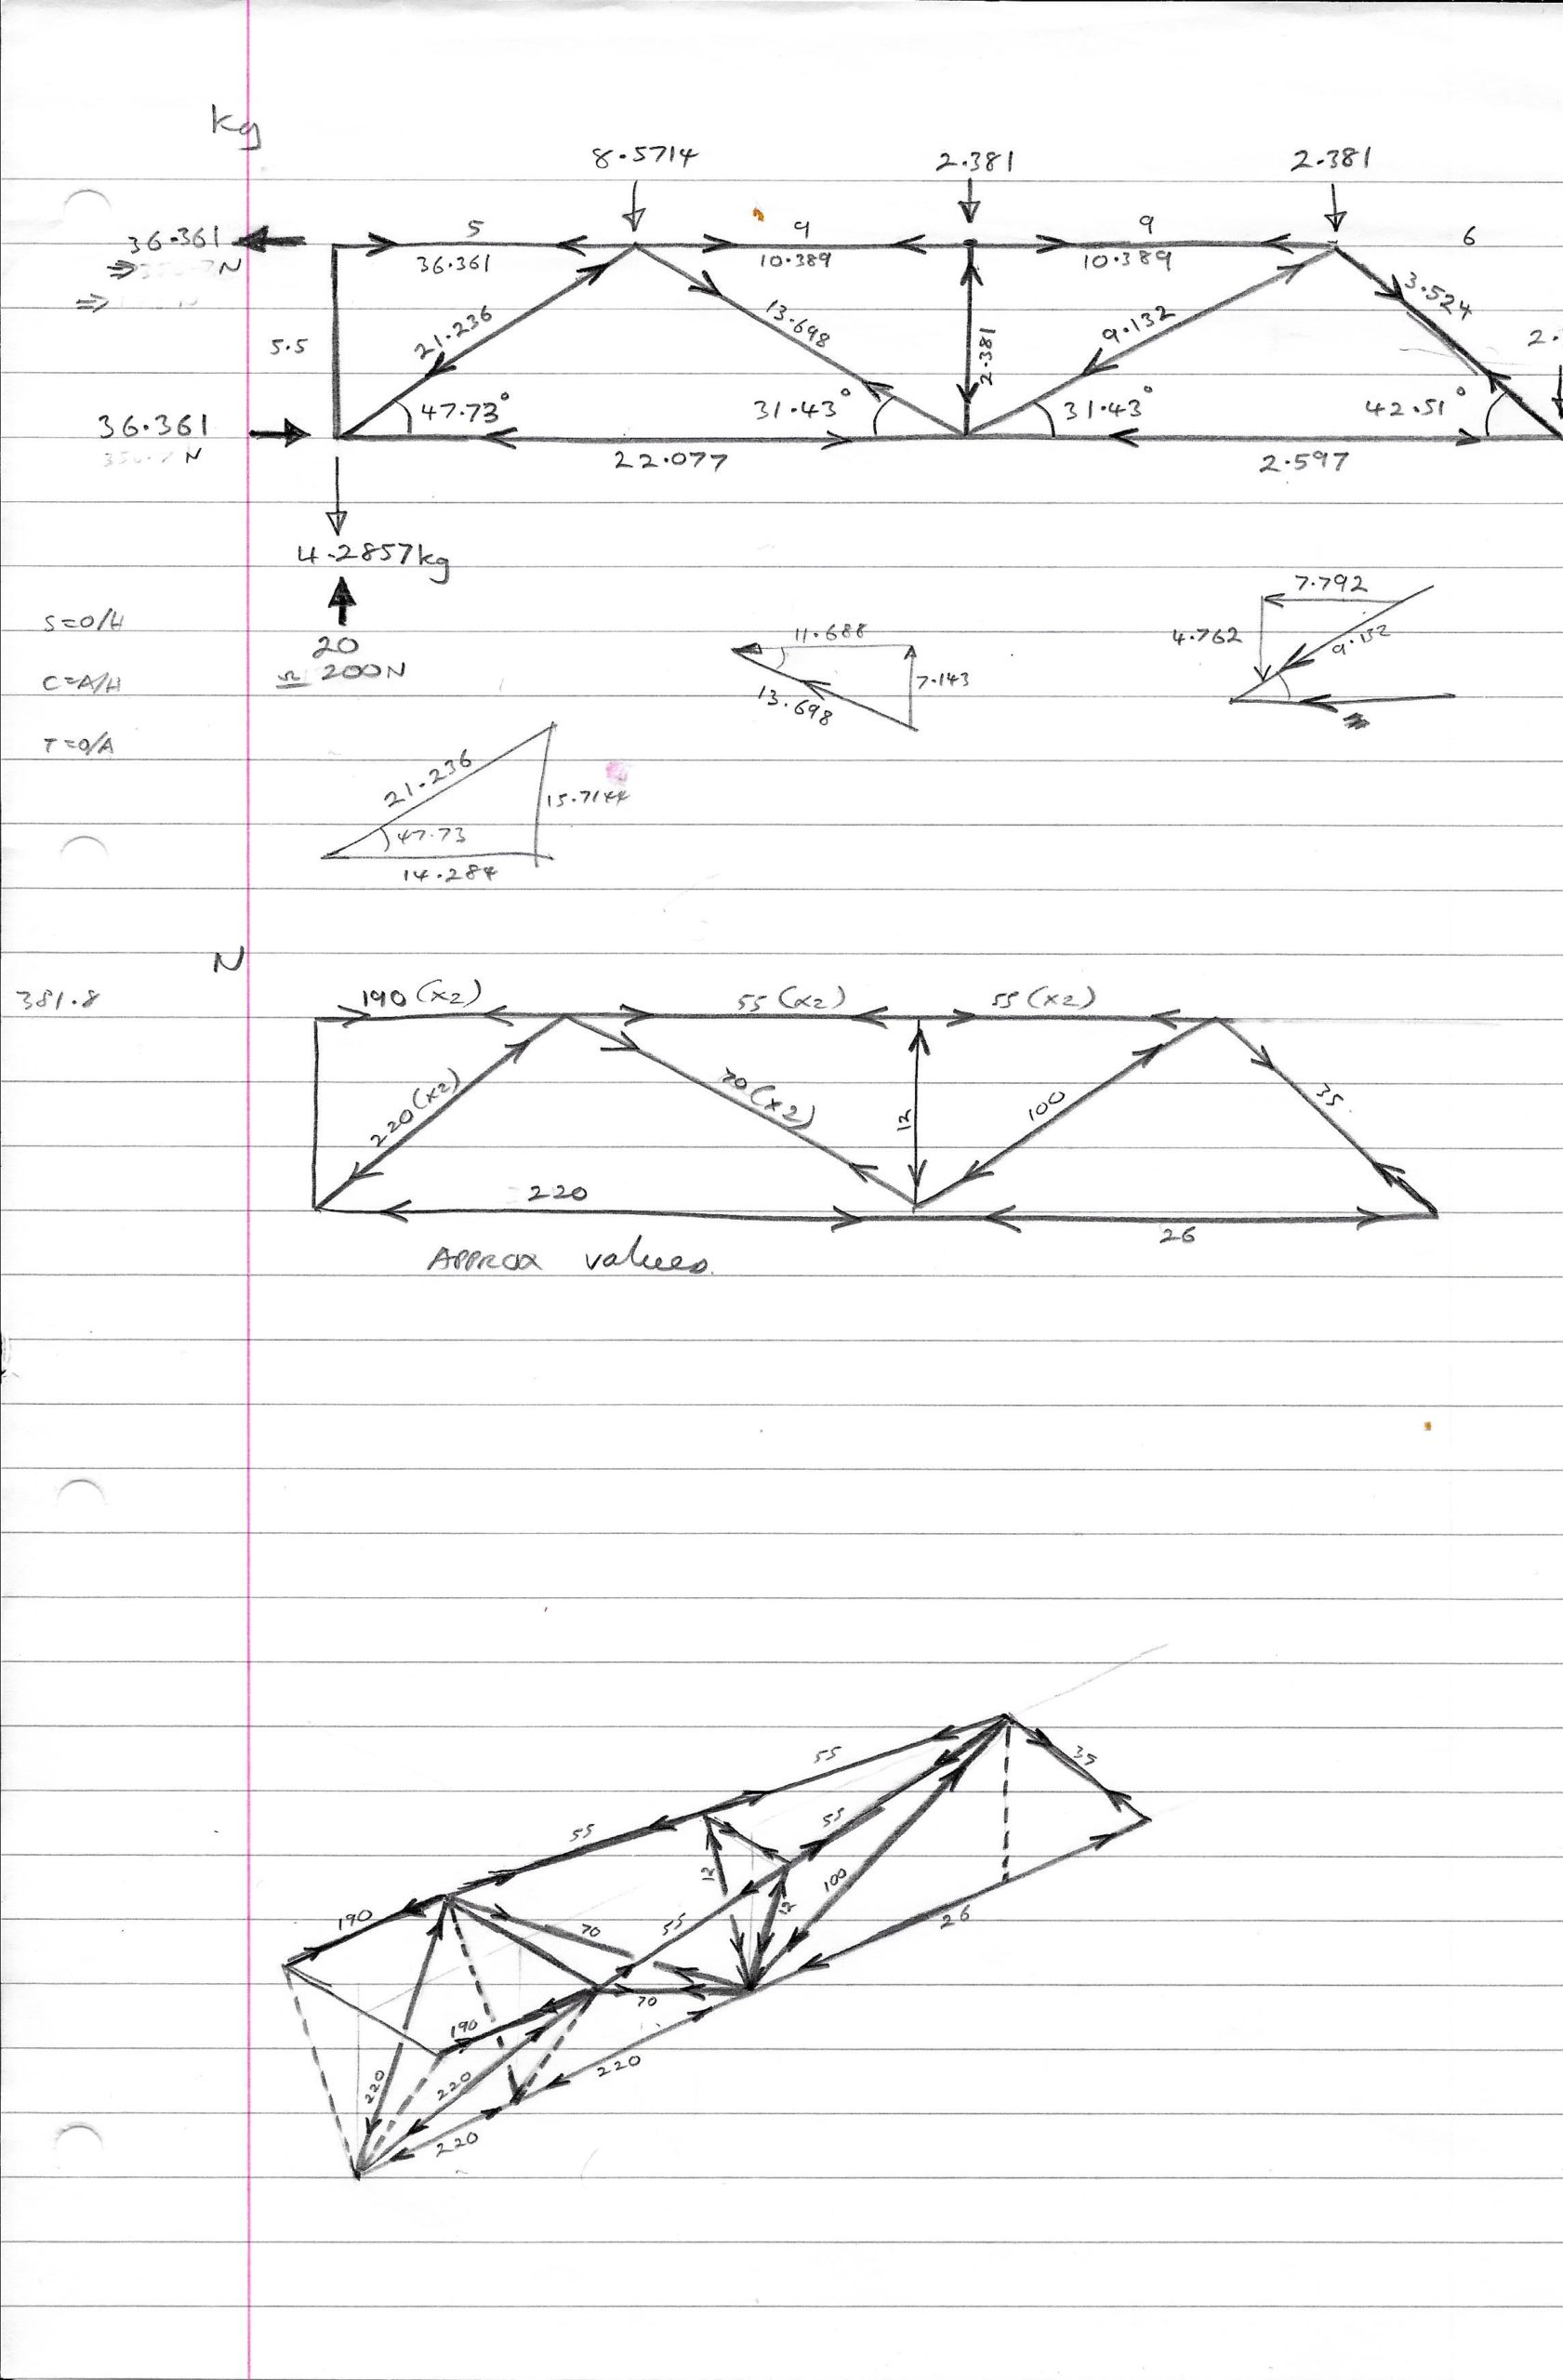 Bow structure diagram